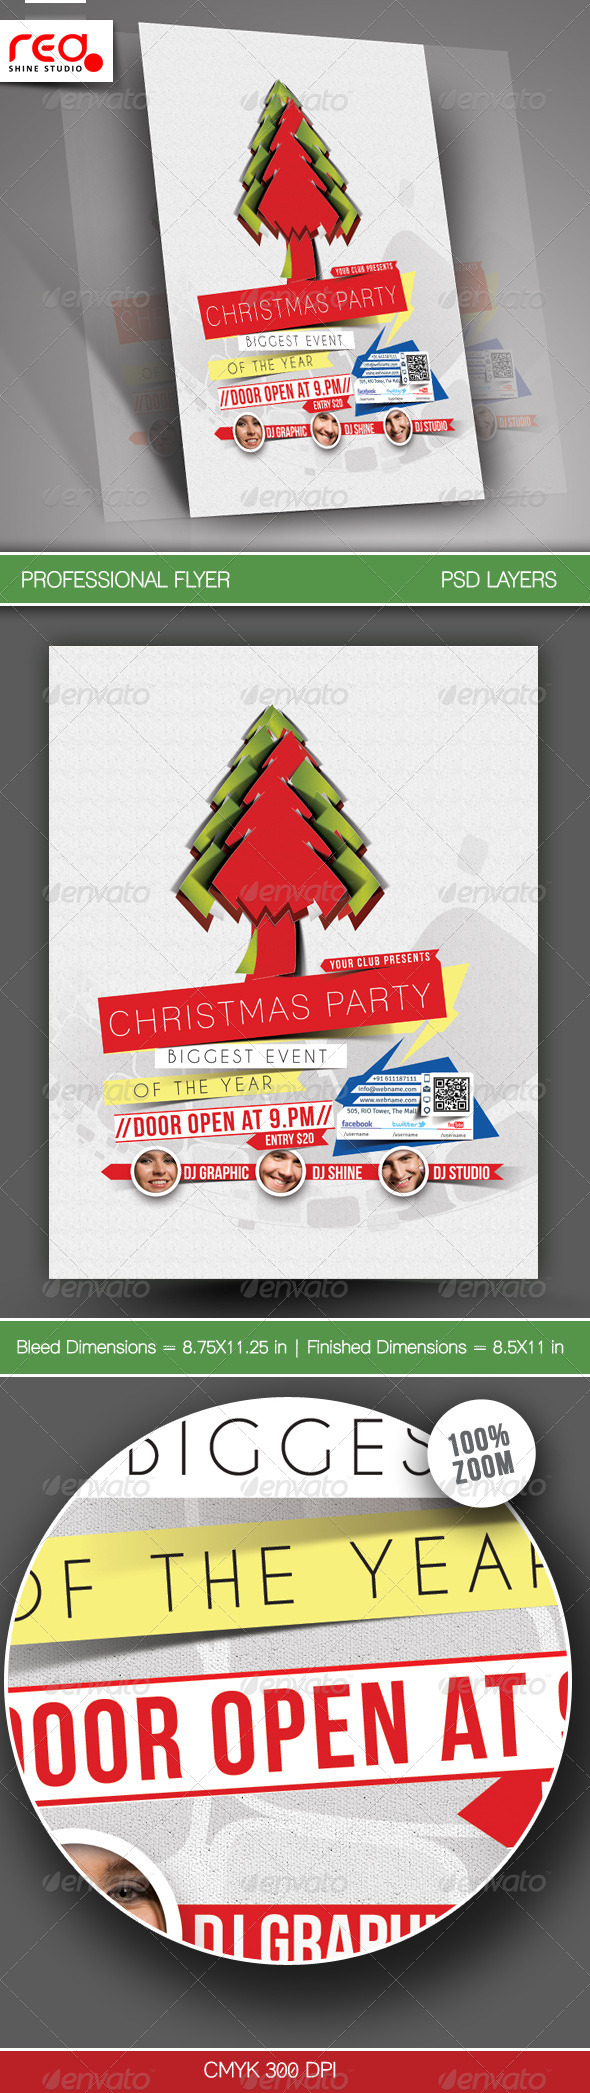 Christmas Party Flyer & Poster Template - Clubs & Parties Events